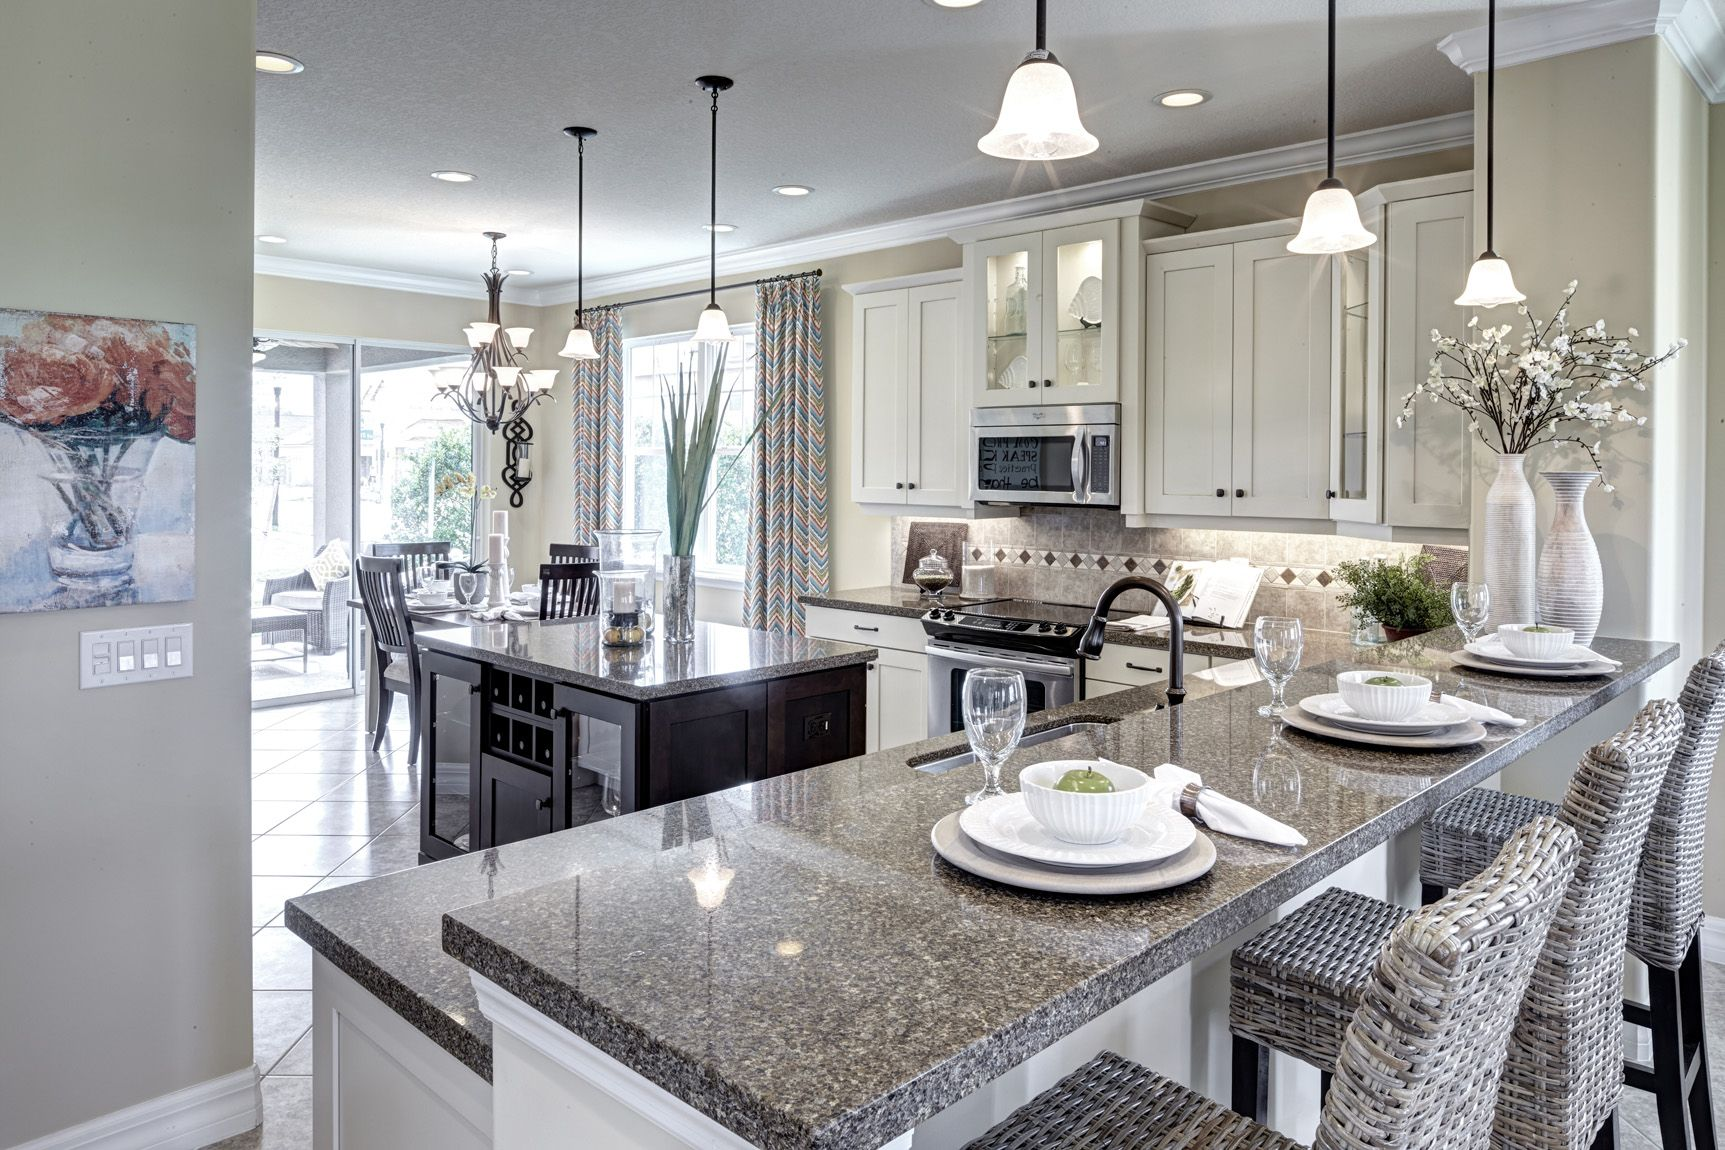 GRANITE COLOUR Elegant Lighting Makes For An Kitchen Our Exquisite Newbury Model Millennia Park Orlando